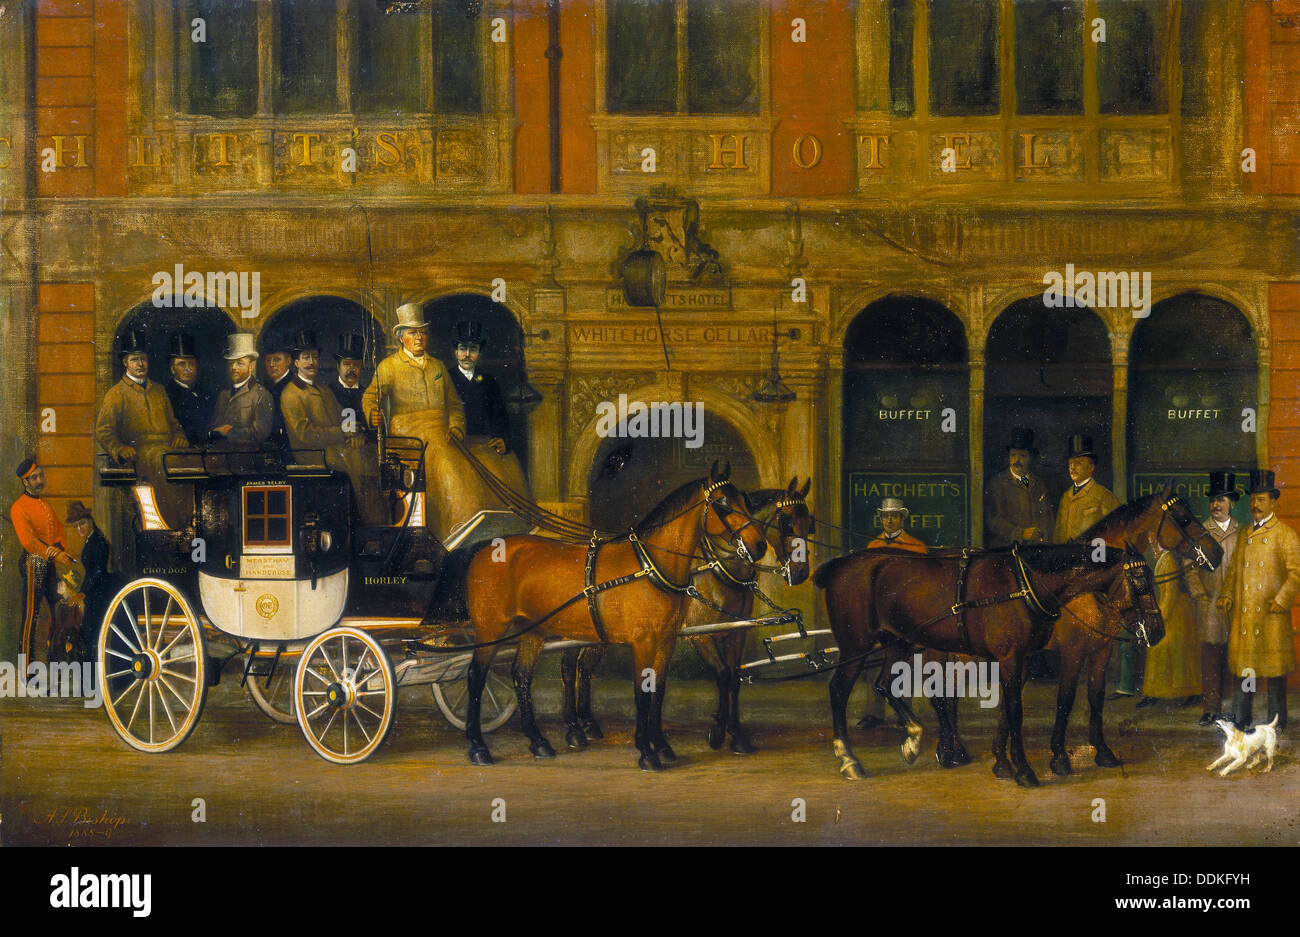 'James Selby's Brighton Coach outside the New White Horse Cellar, Piccadilly, c1888.   Artist: AS Bishop - Stock Image